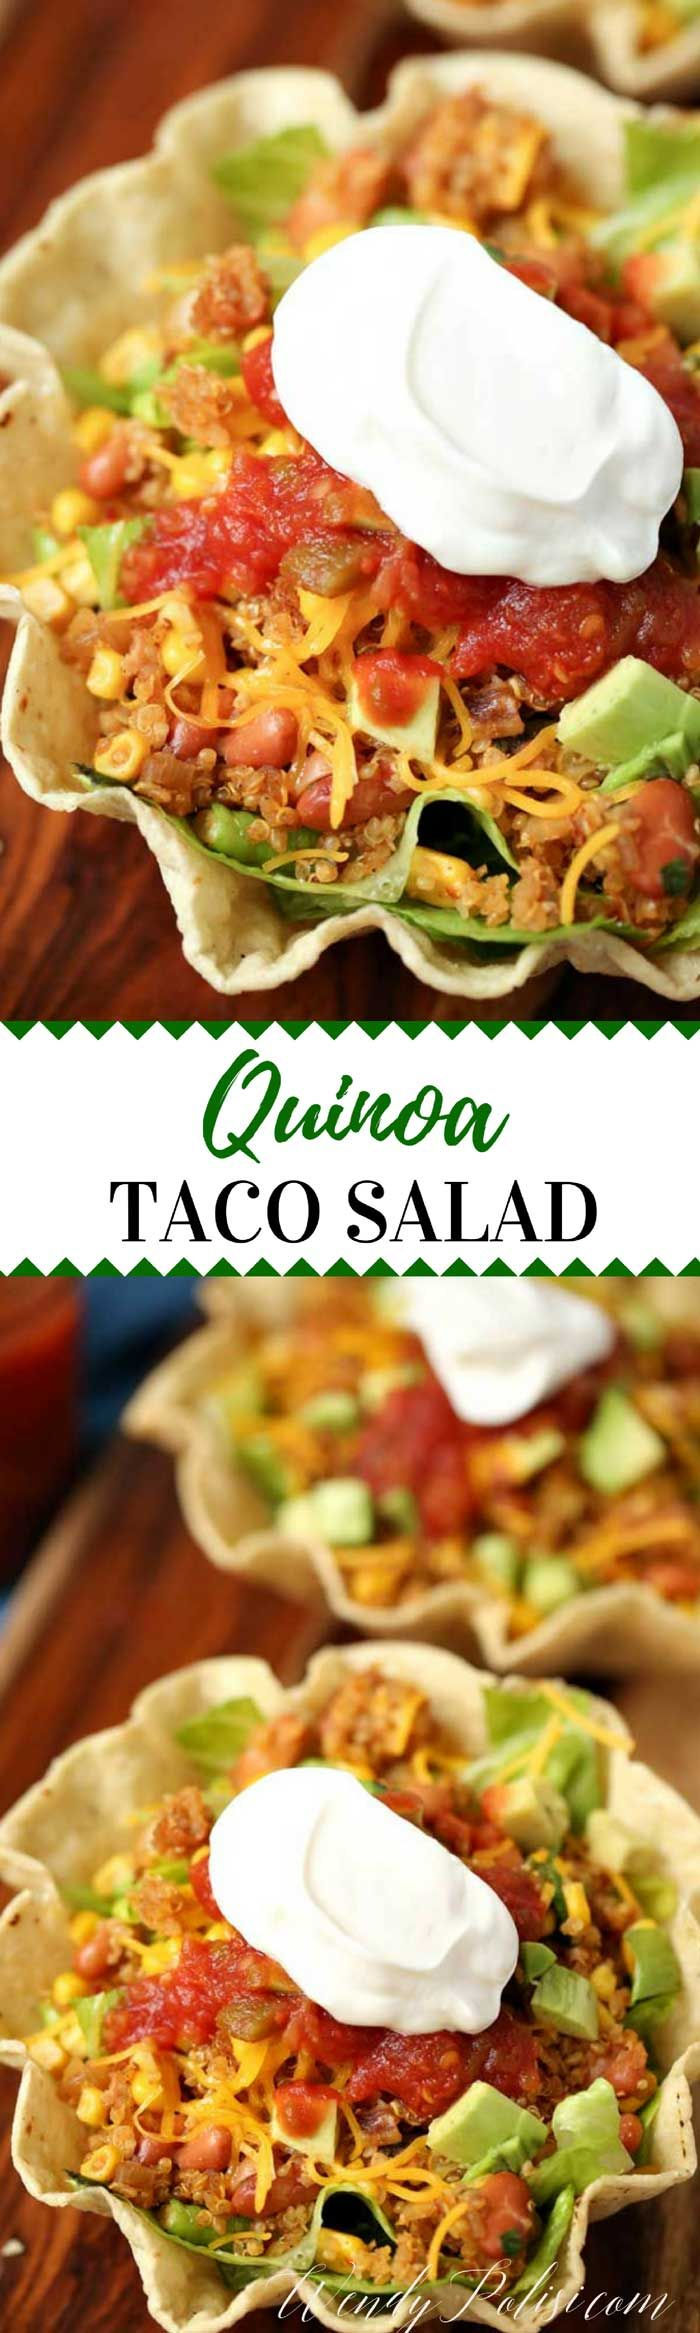 This Quinoa Taco Salad Bowl is a delicious and nutritious vegetarian meal that even meat eaters will love!  The perfect weeknight dinner. via @wendypolisi